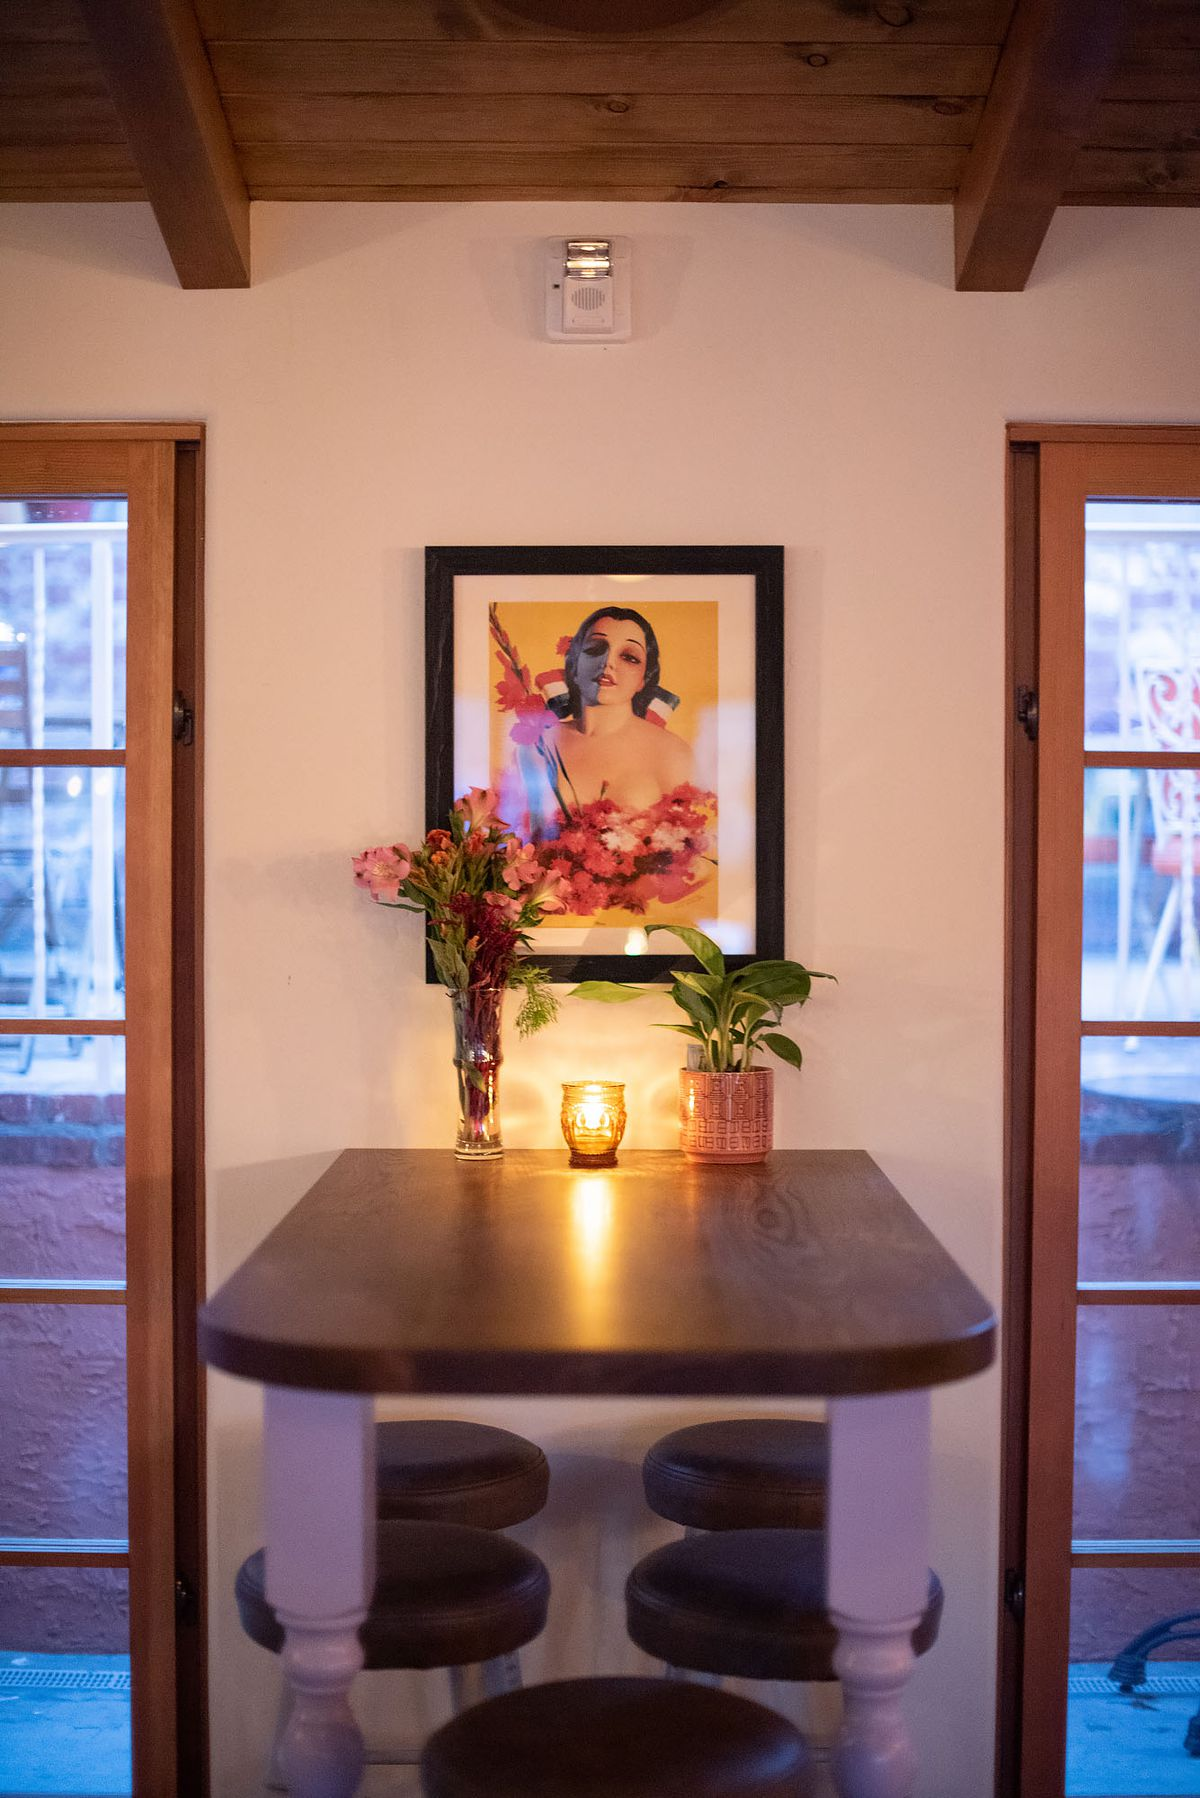 High table attached to wall with painting and candle.